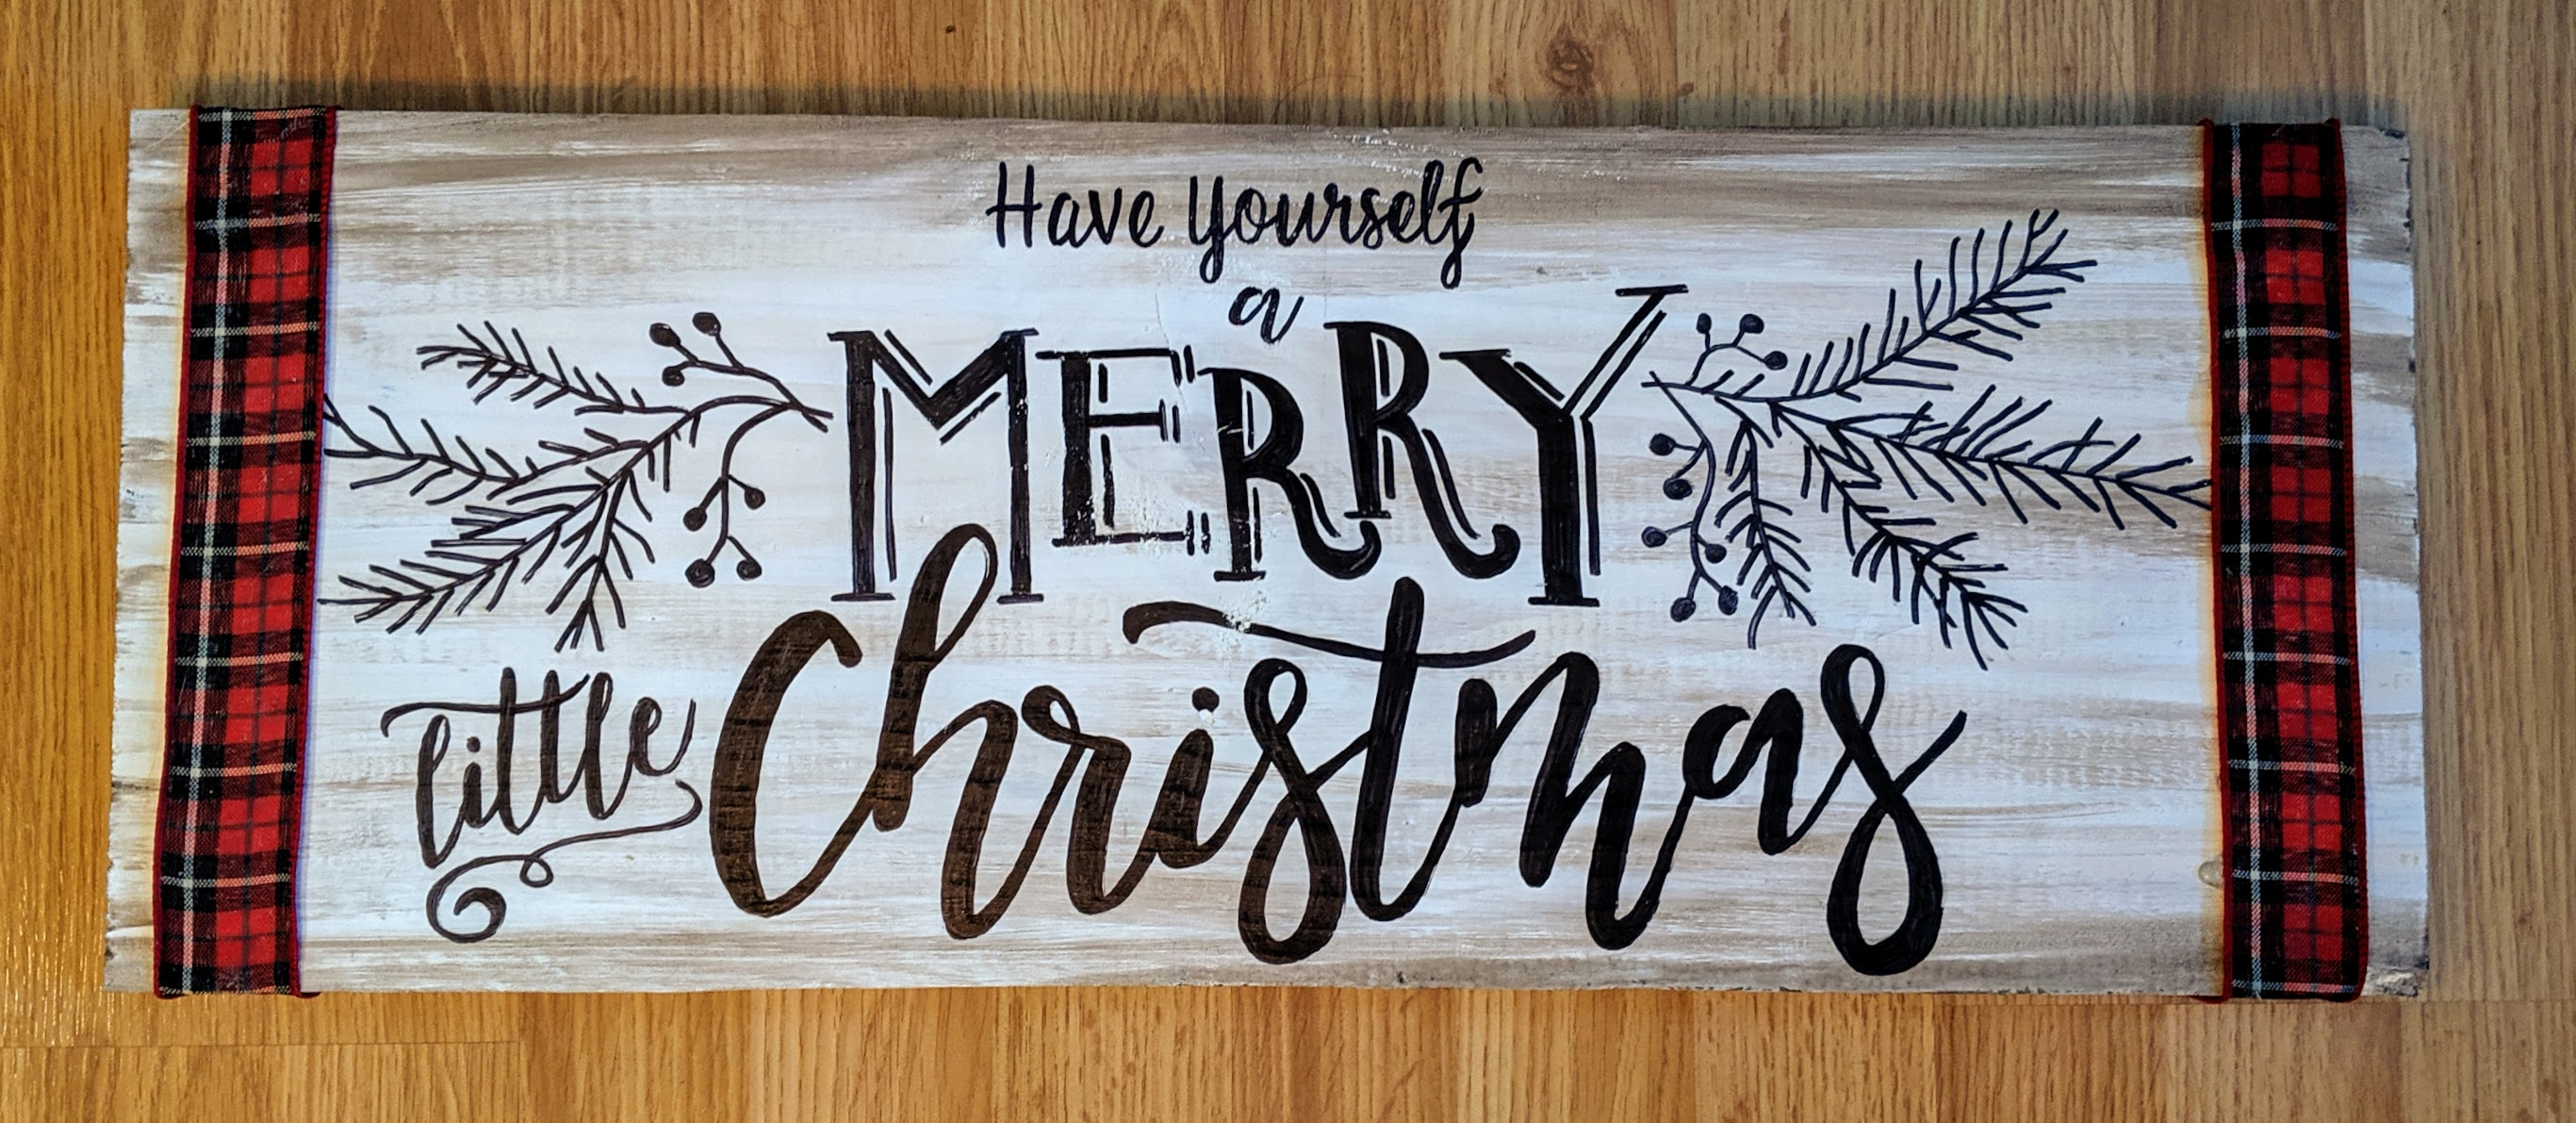 Have Yourself a Merry Little Christmas R